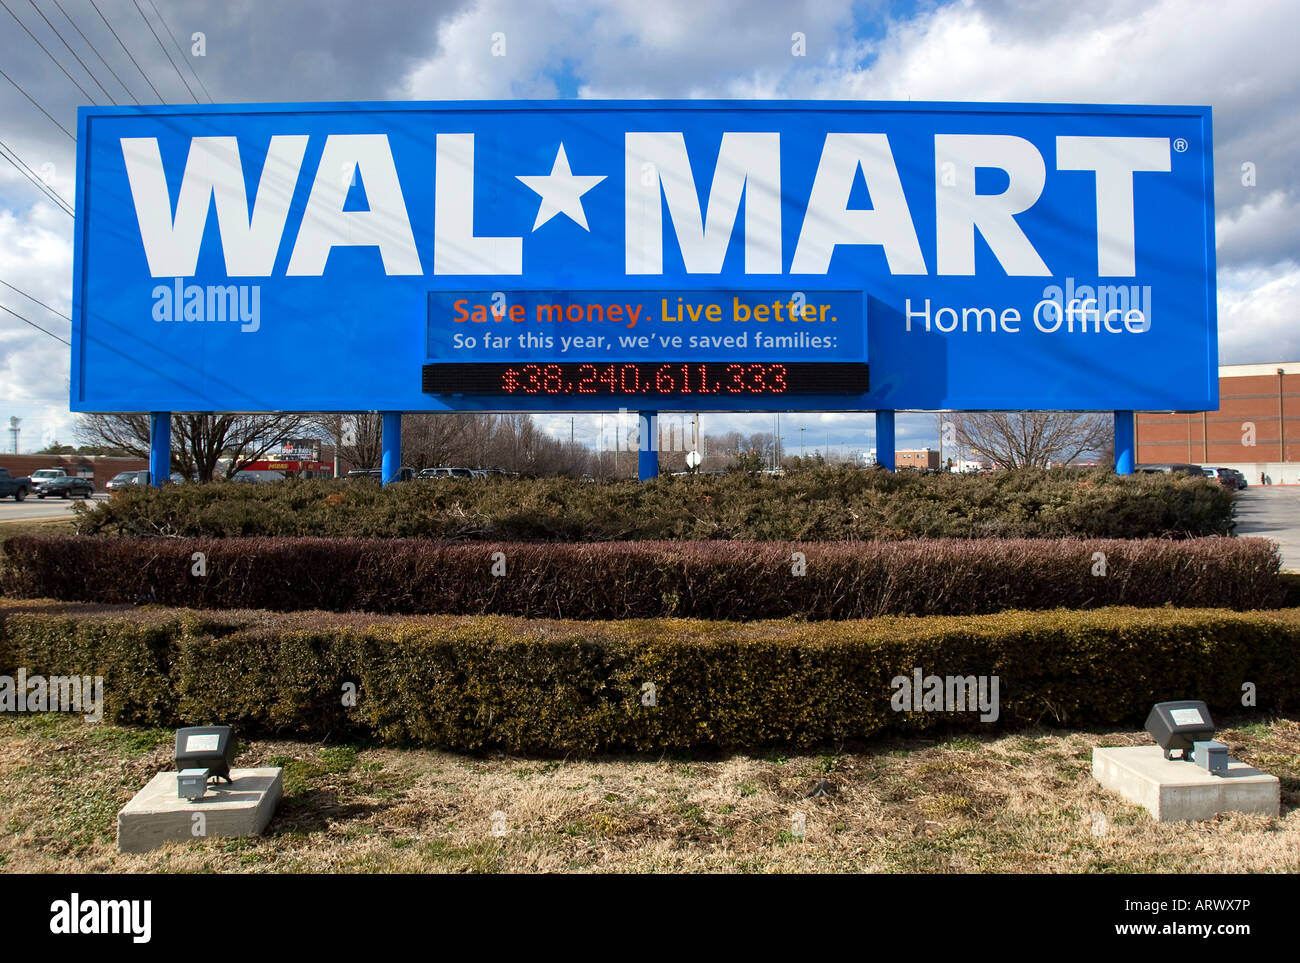 Wal-Mart's new sign showing its new 'Save Money, Live Better' slogan at the retail giant's Home - Stock Image